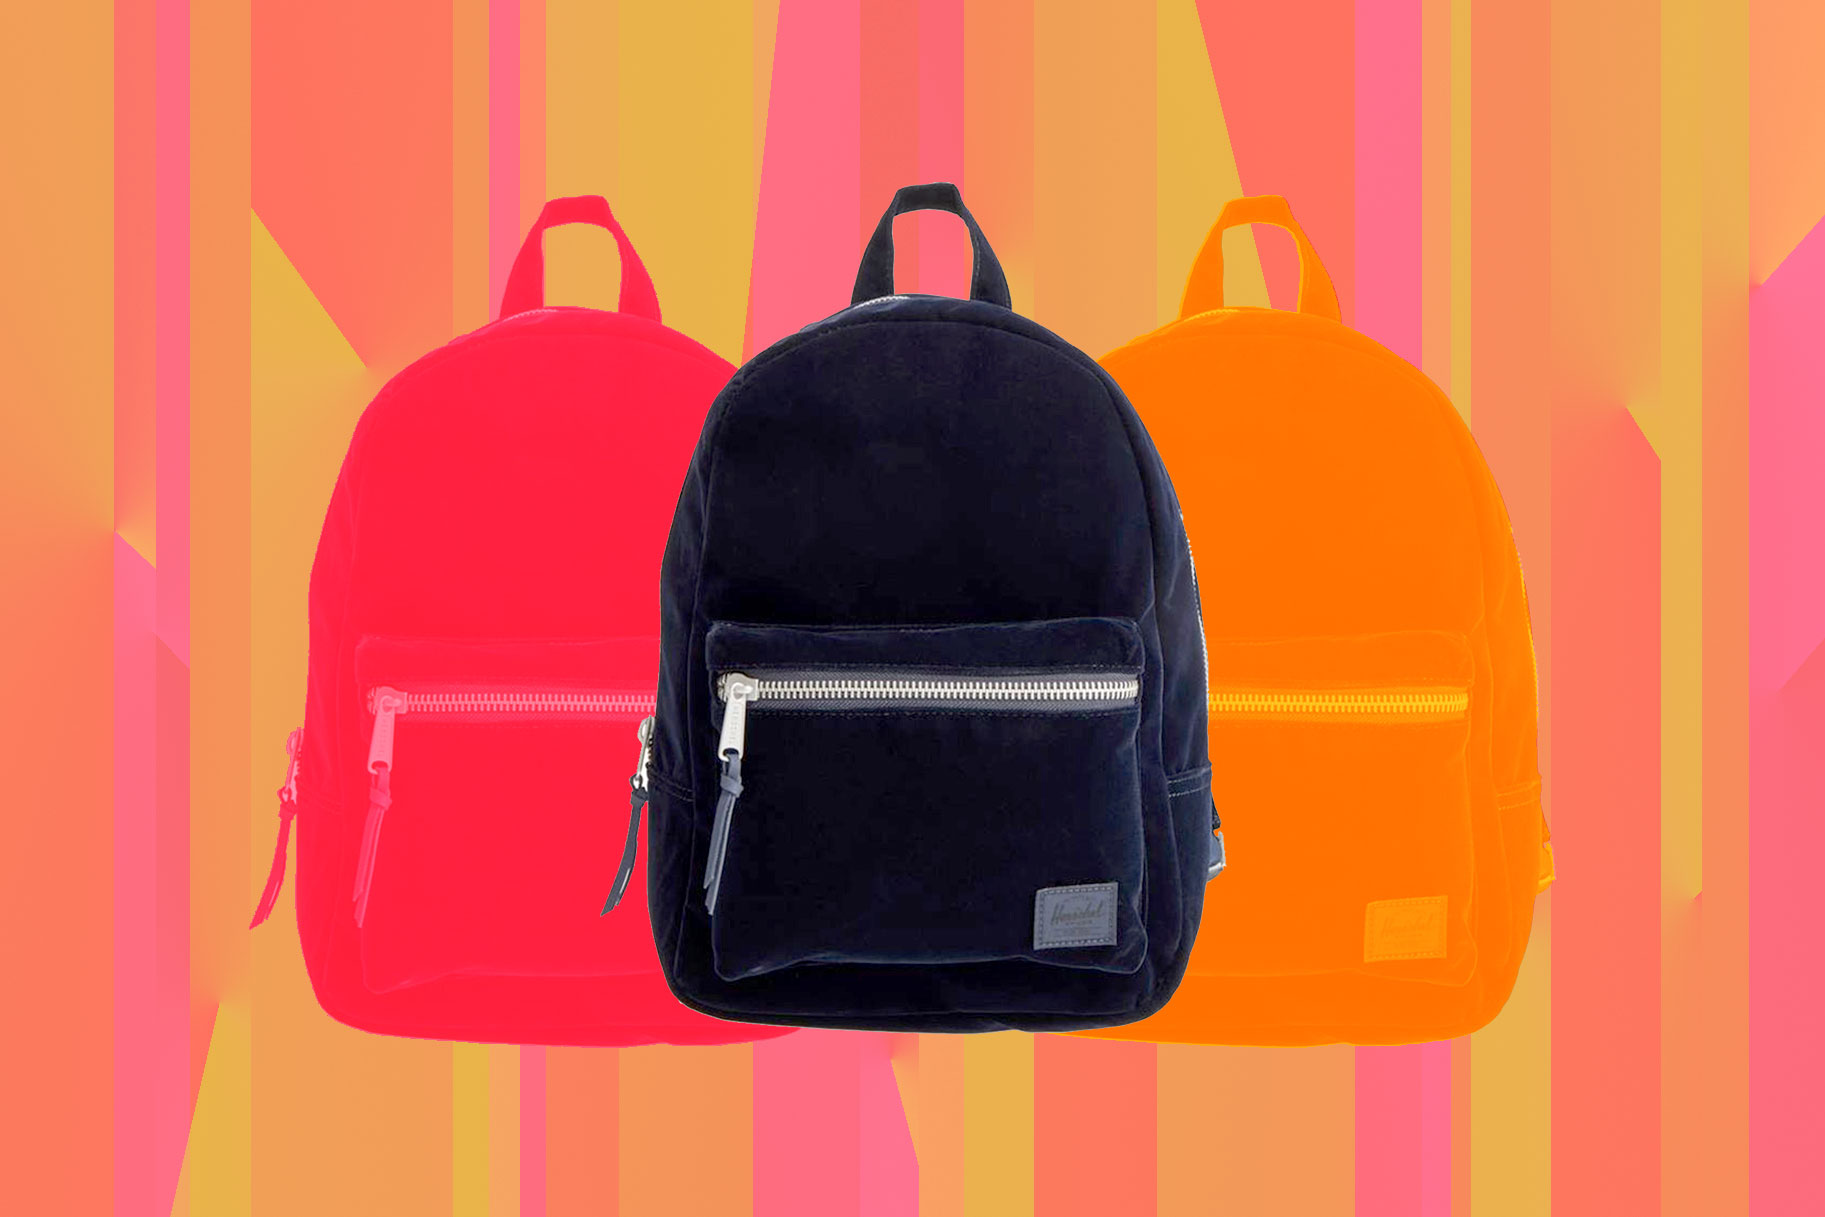 d8ac13fc2409 Backpacks Are Back  10 Chic Ways to Replace Your Purse